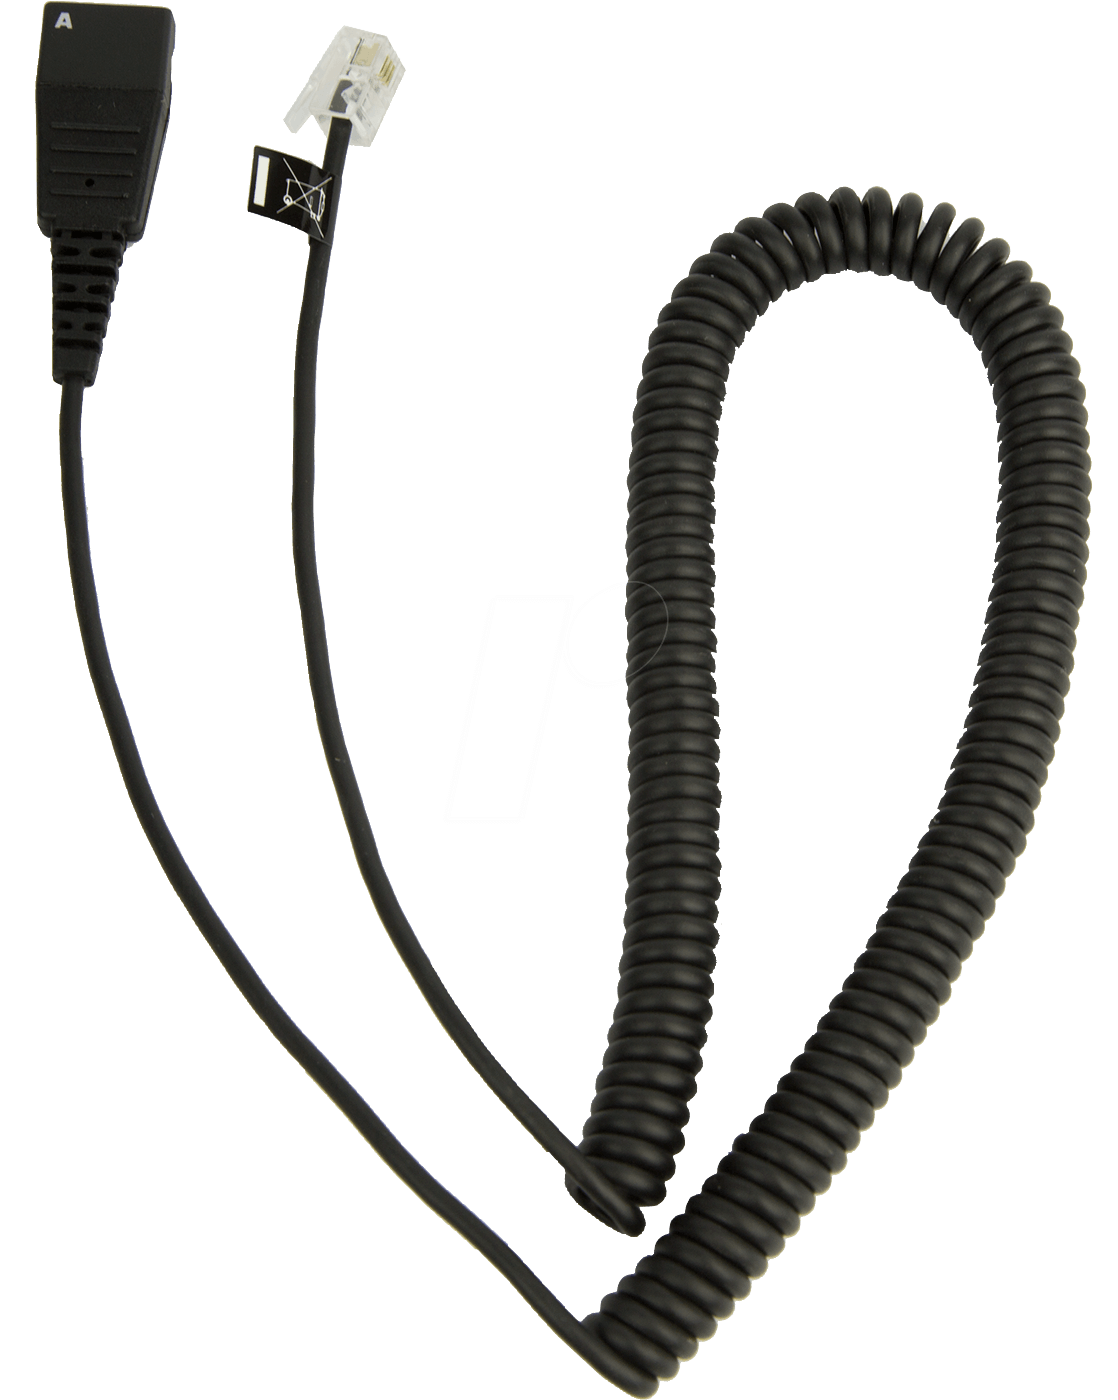 GN 8800-01-37: Headset cable Quick Disconnect at reichelt